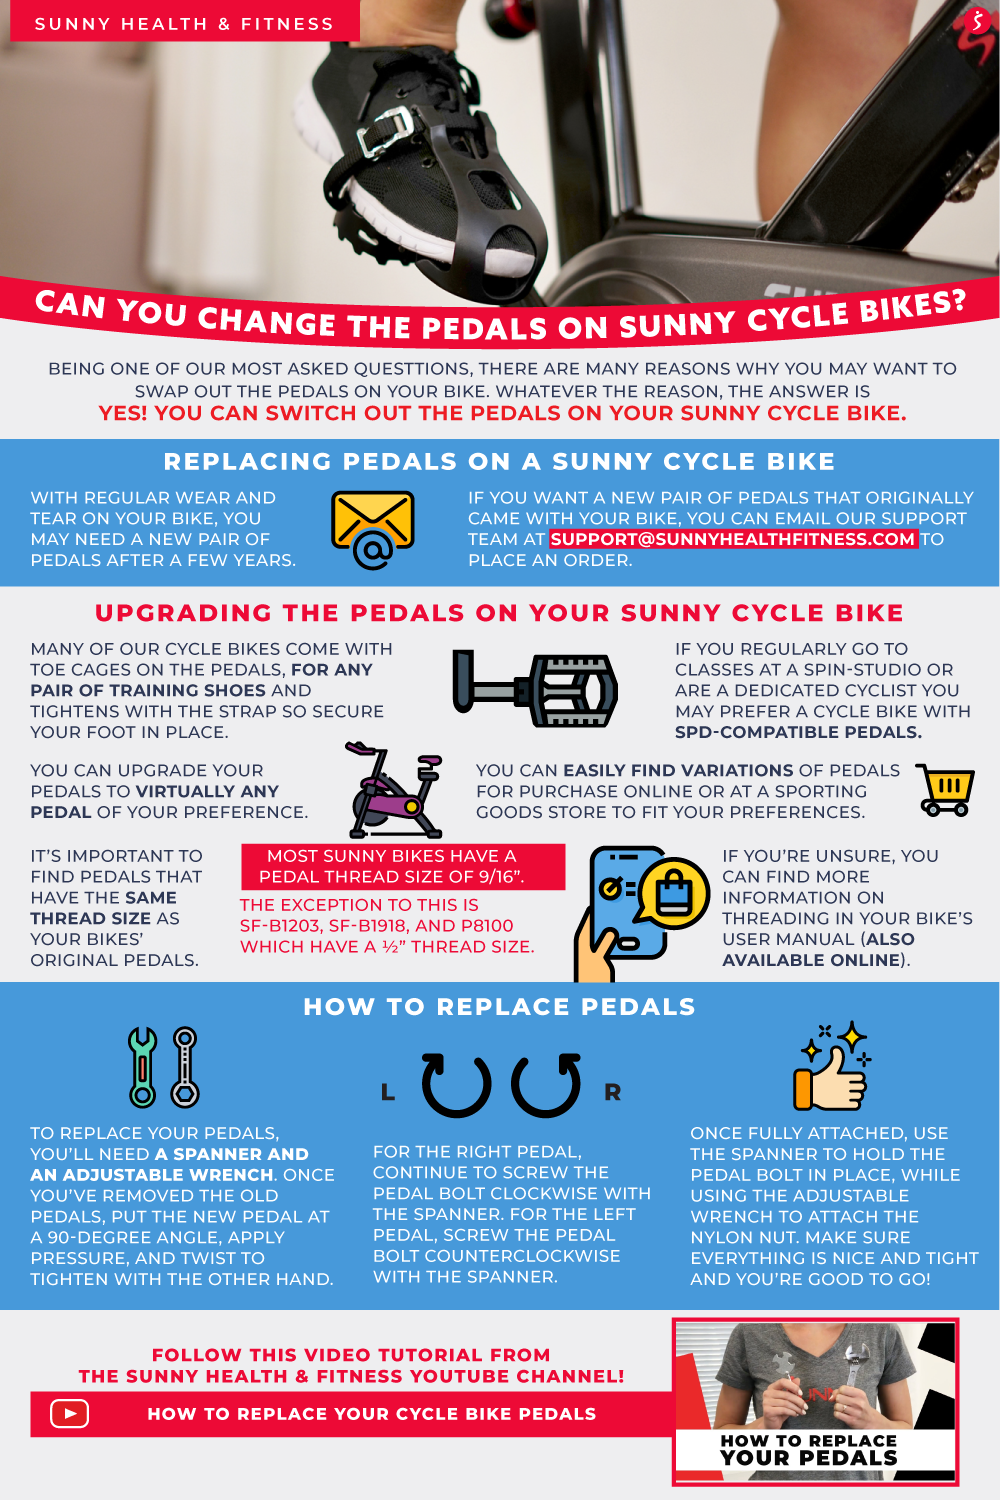 Can You Change the Pedals on Sunny Cycle Bikes Infographic